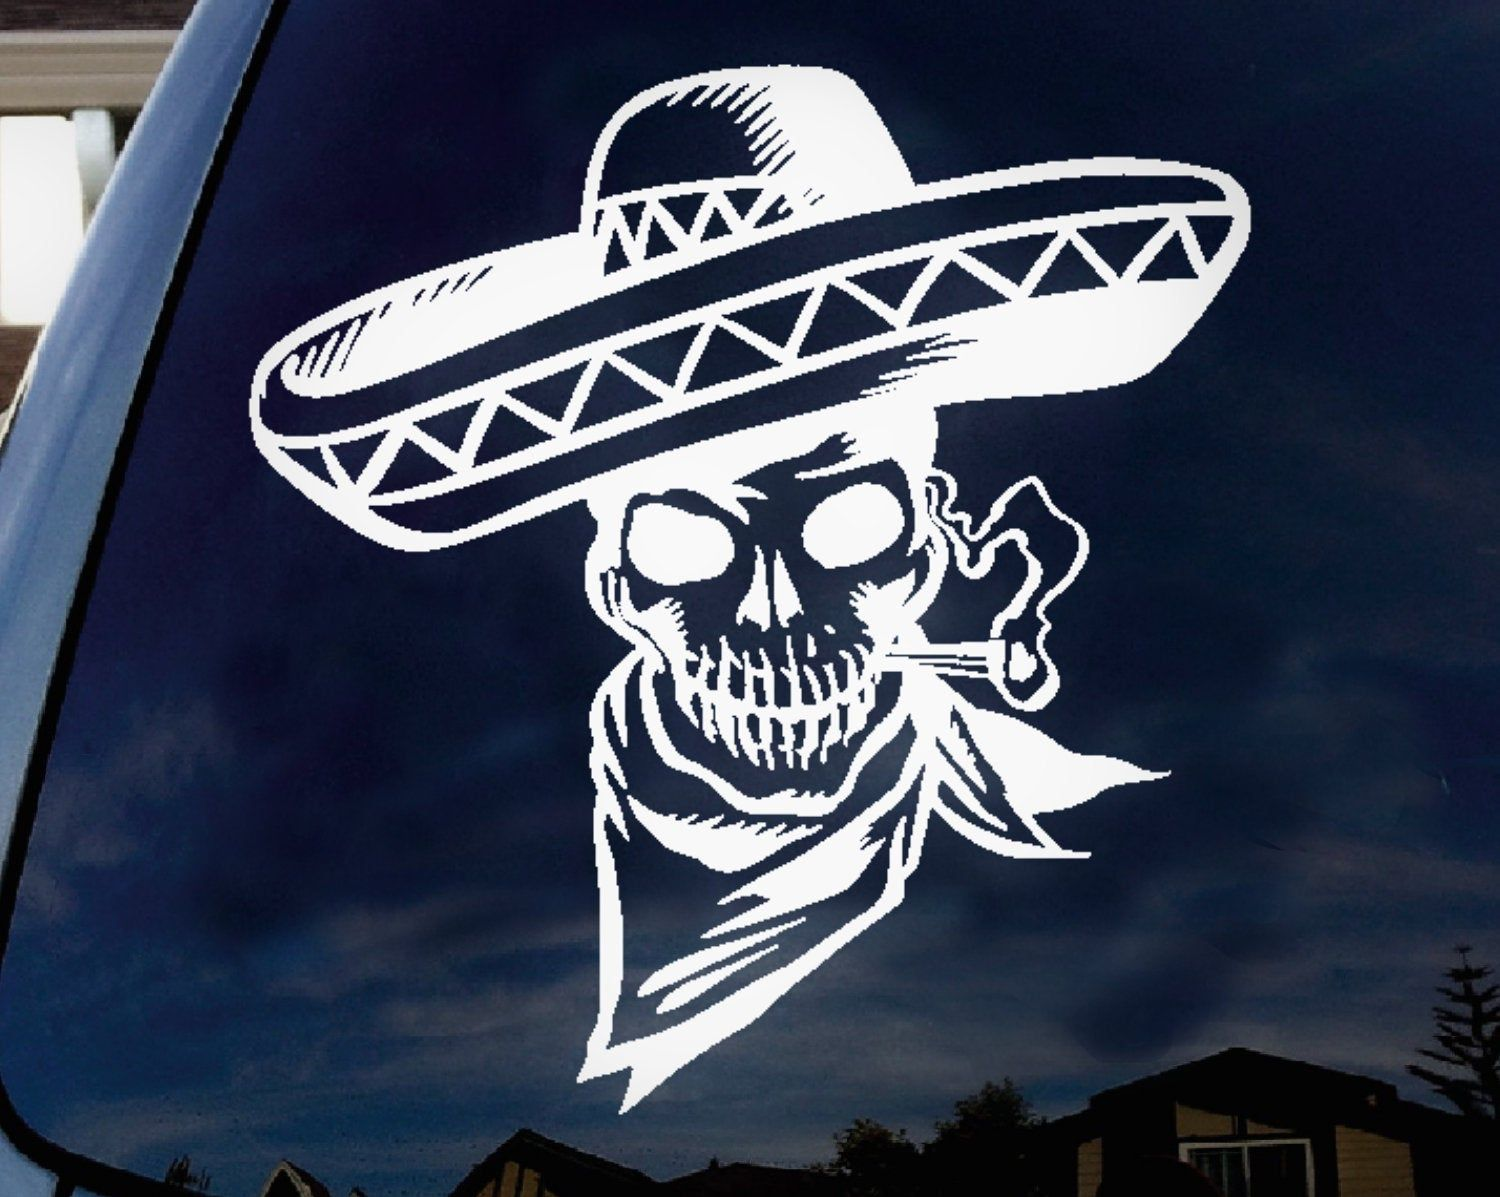 Mexican Decal Skeleton Decal Vinyl Sticker Funny Decal Car Truck Laptop Tumbler Yeti Wall Window Decor By Art Mexican Skeleton Skeleton Decals Skulls Drawing [ jpg ]